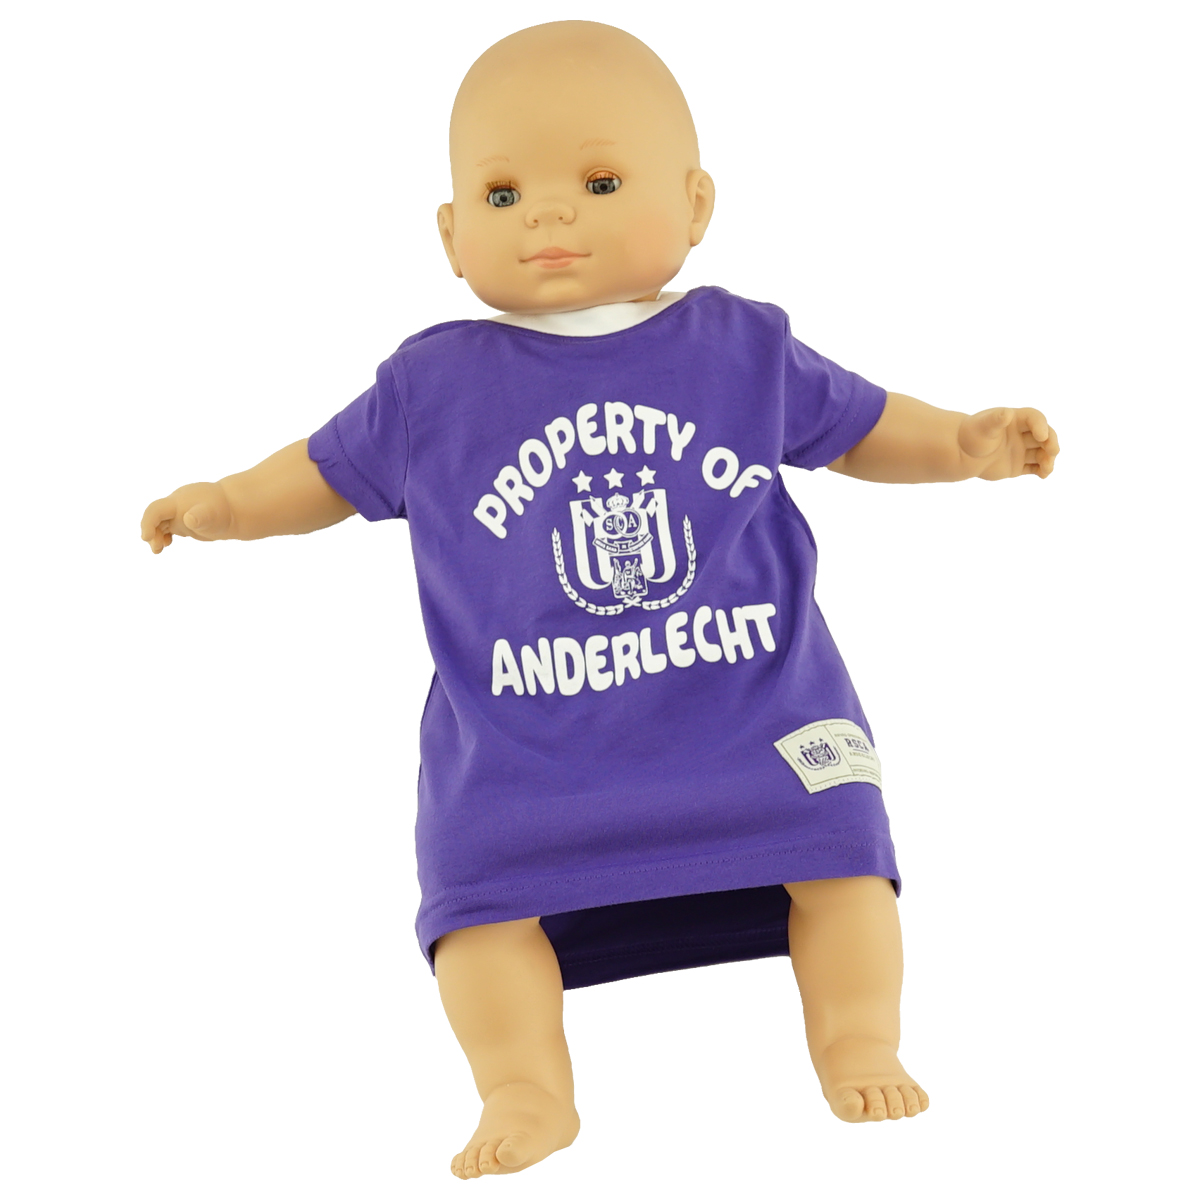 RSCA T-shirt Kids Property Of Anderlecht